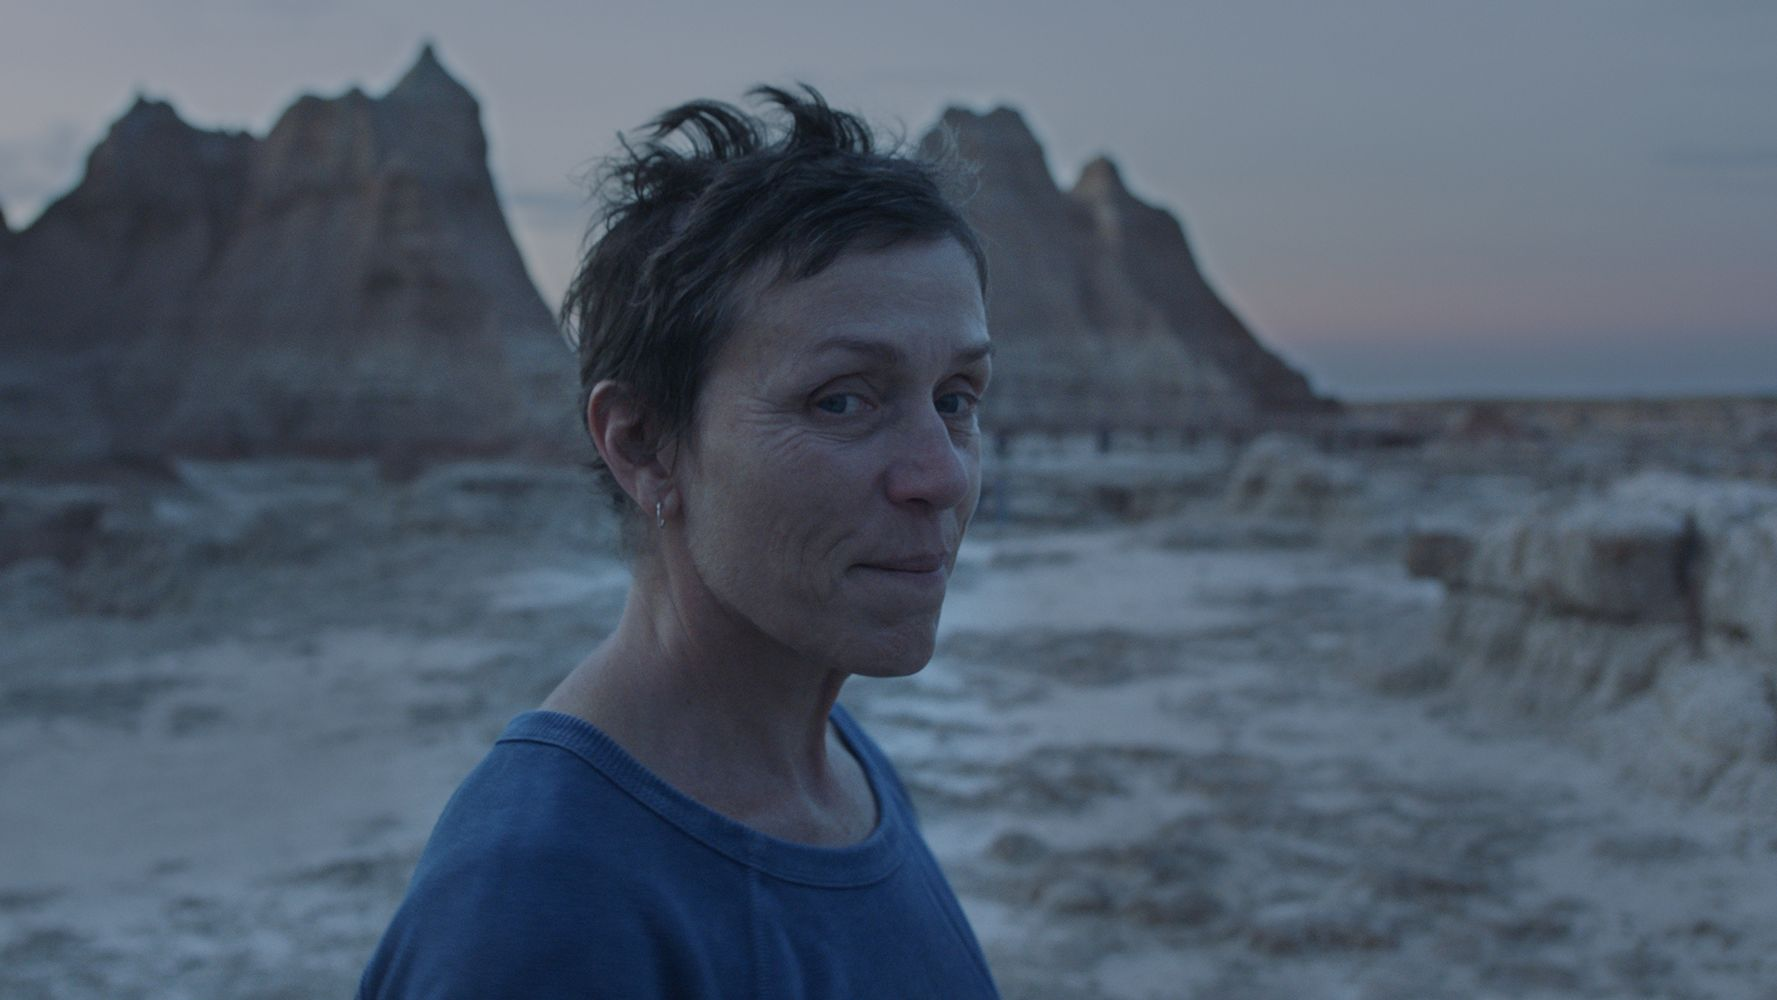 www.huffpost.com: 'Nomadland' Is An Astonishing Movie And A Worthy Oscar Front-Runner